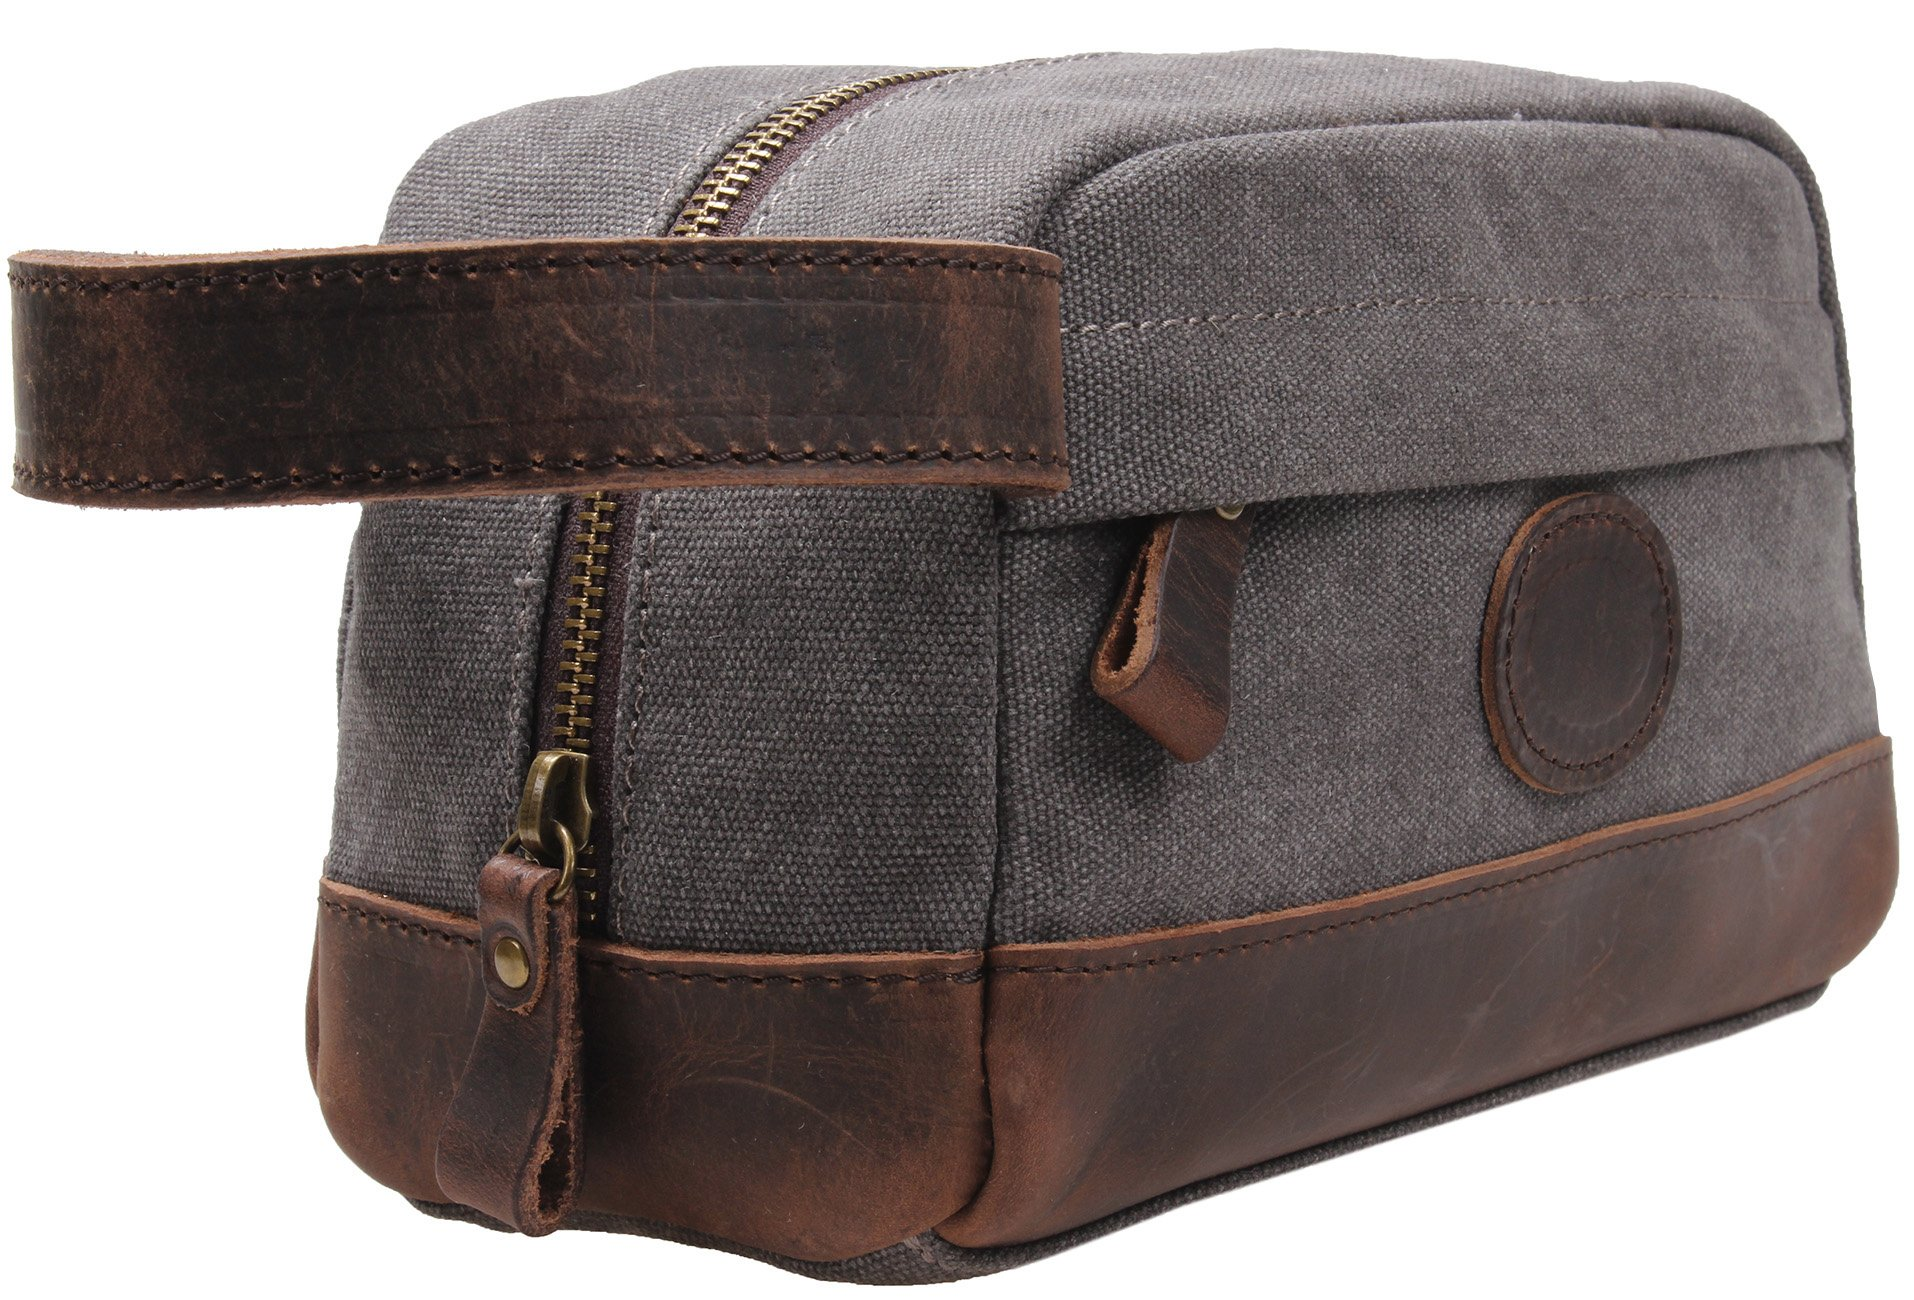 MSG Vintage Leather Canvas Travel Toiletry Bag Shaving Dopp Kit #A001 (Grey)